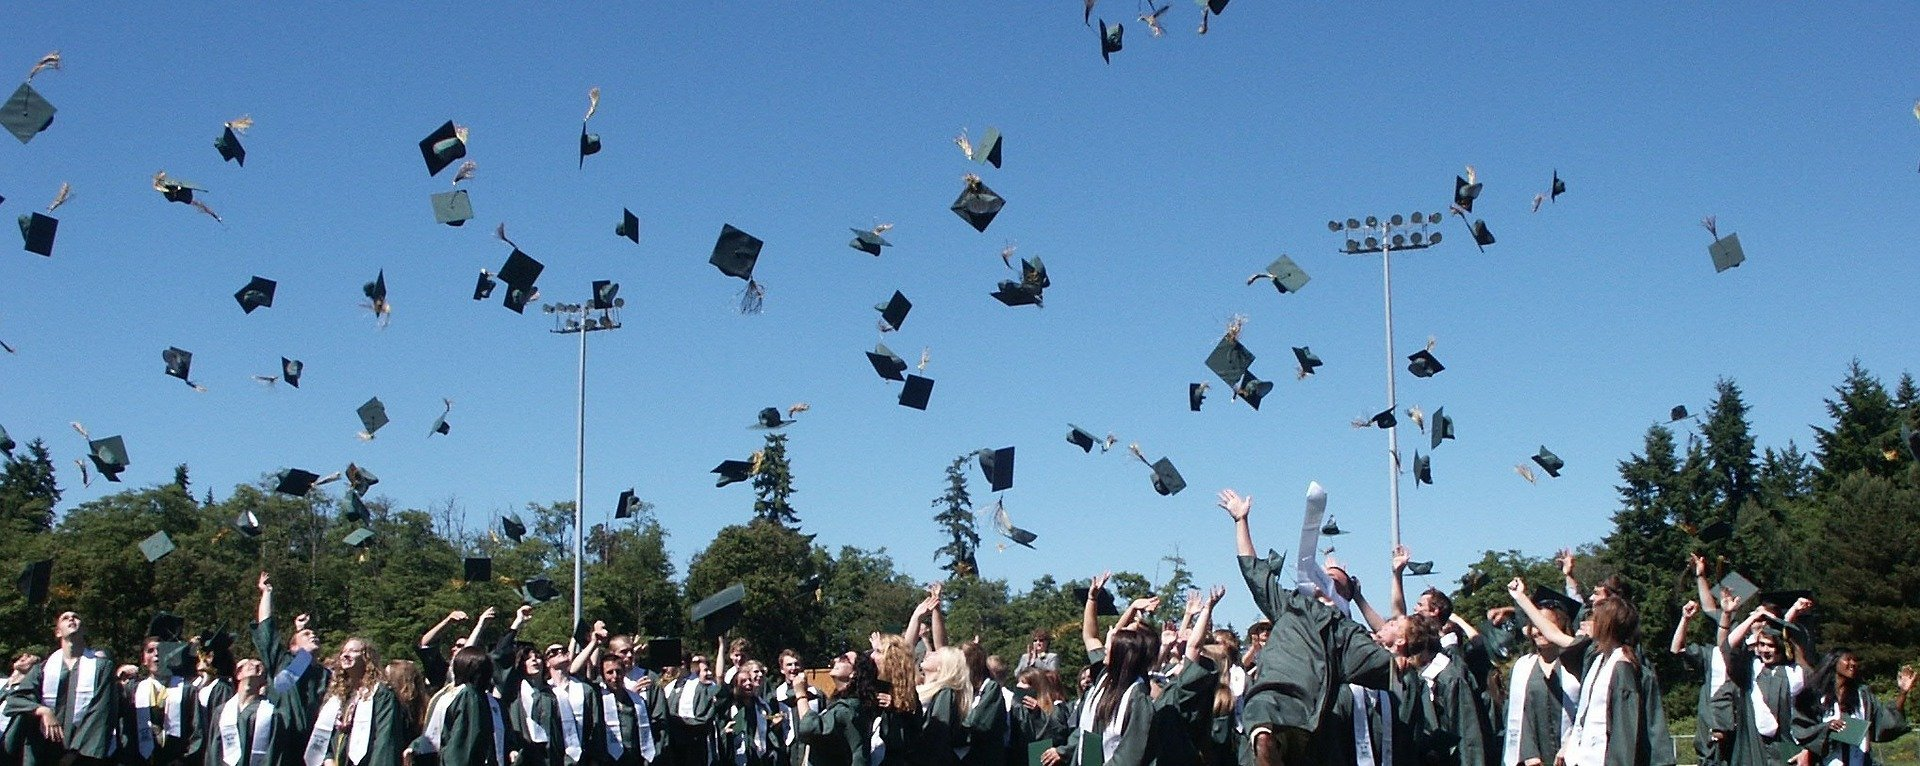 A bunch of high school graduates throws their graduation caps up in the air while celebrating outdoors | Photo: Pixabay/Gillian Callison